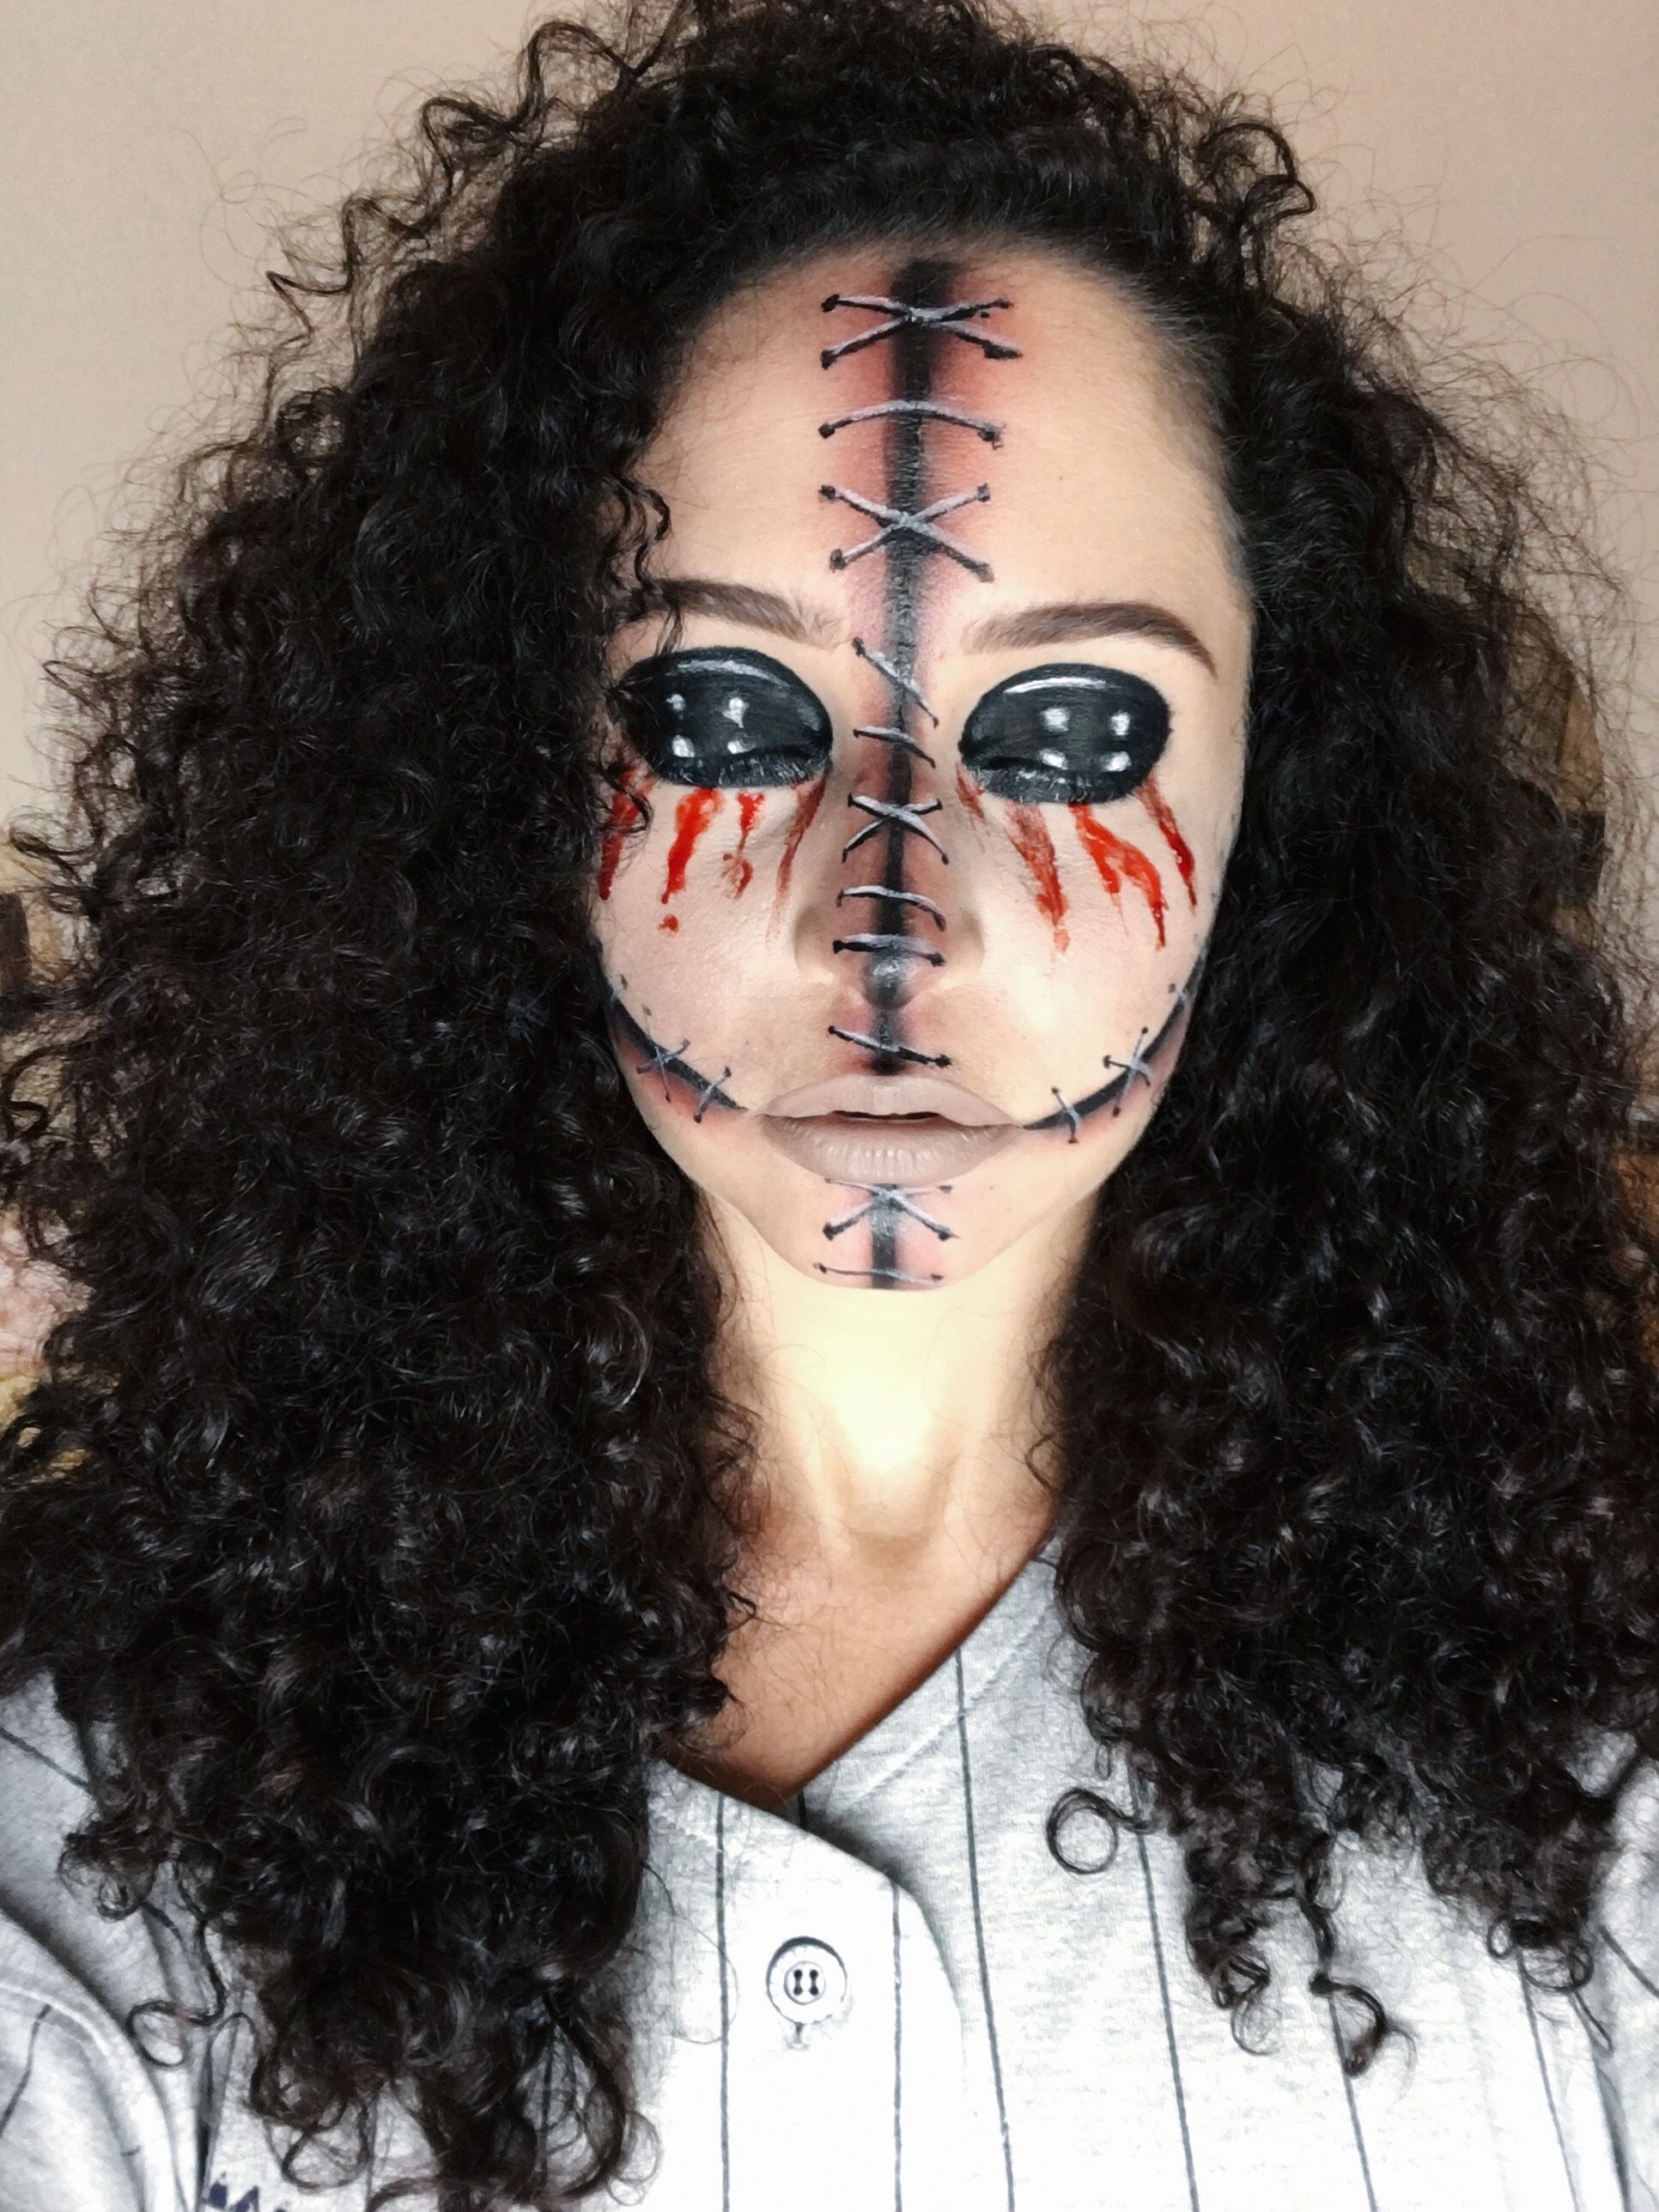 voodoo doll halloween makeup | halowen | pinterest | halloween make